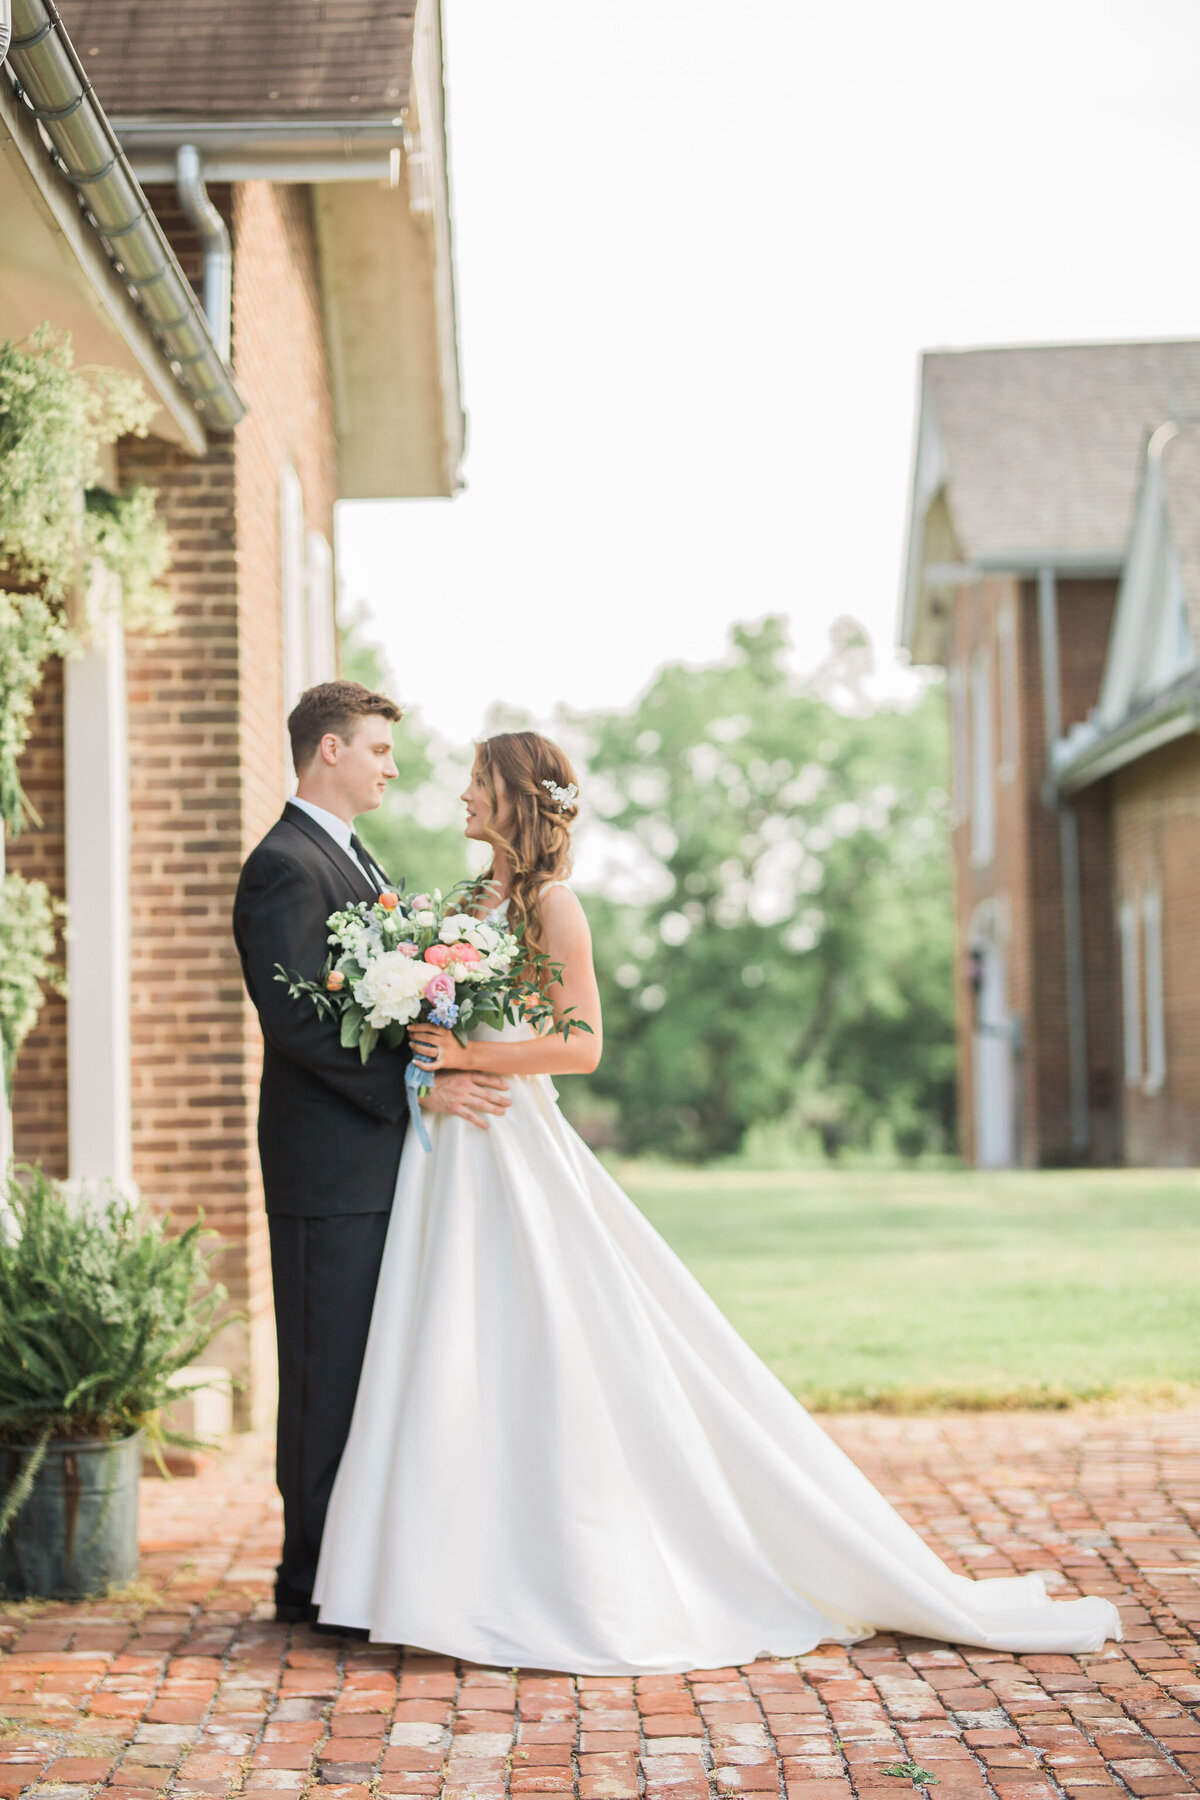 Lynwood Estate - Luxury Kentucky Wedding Venue - Styled Shoot 00003